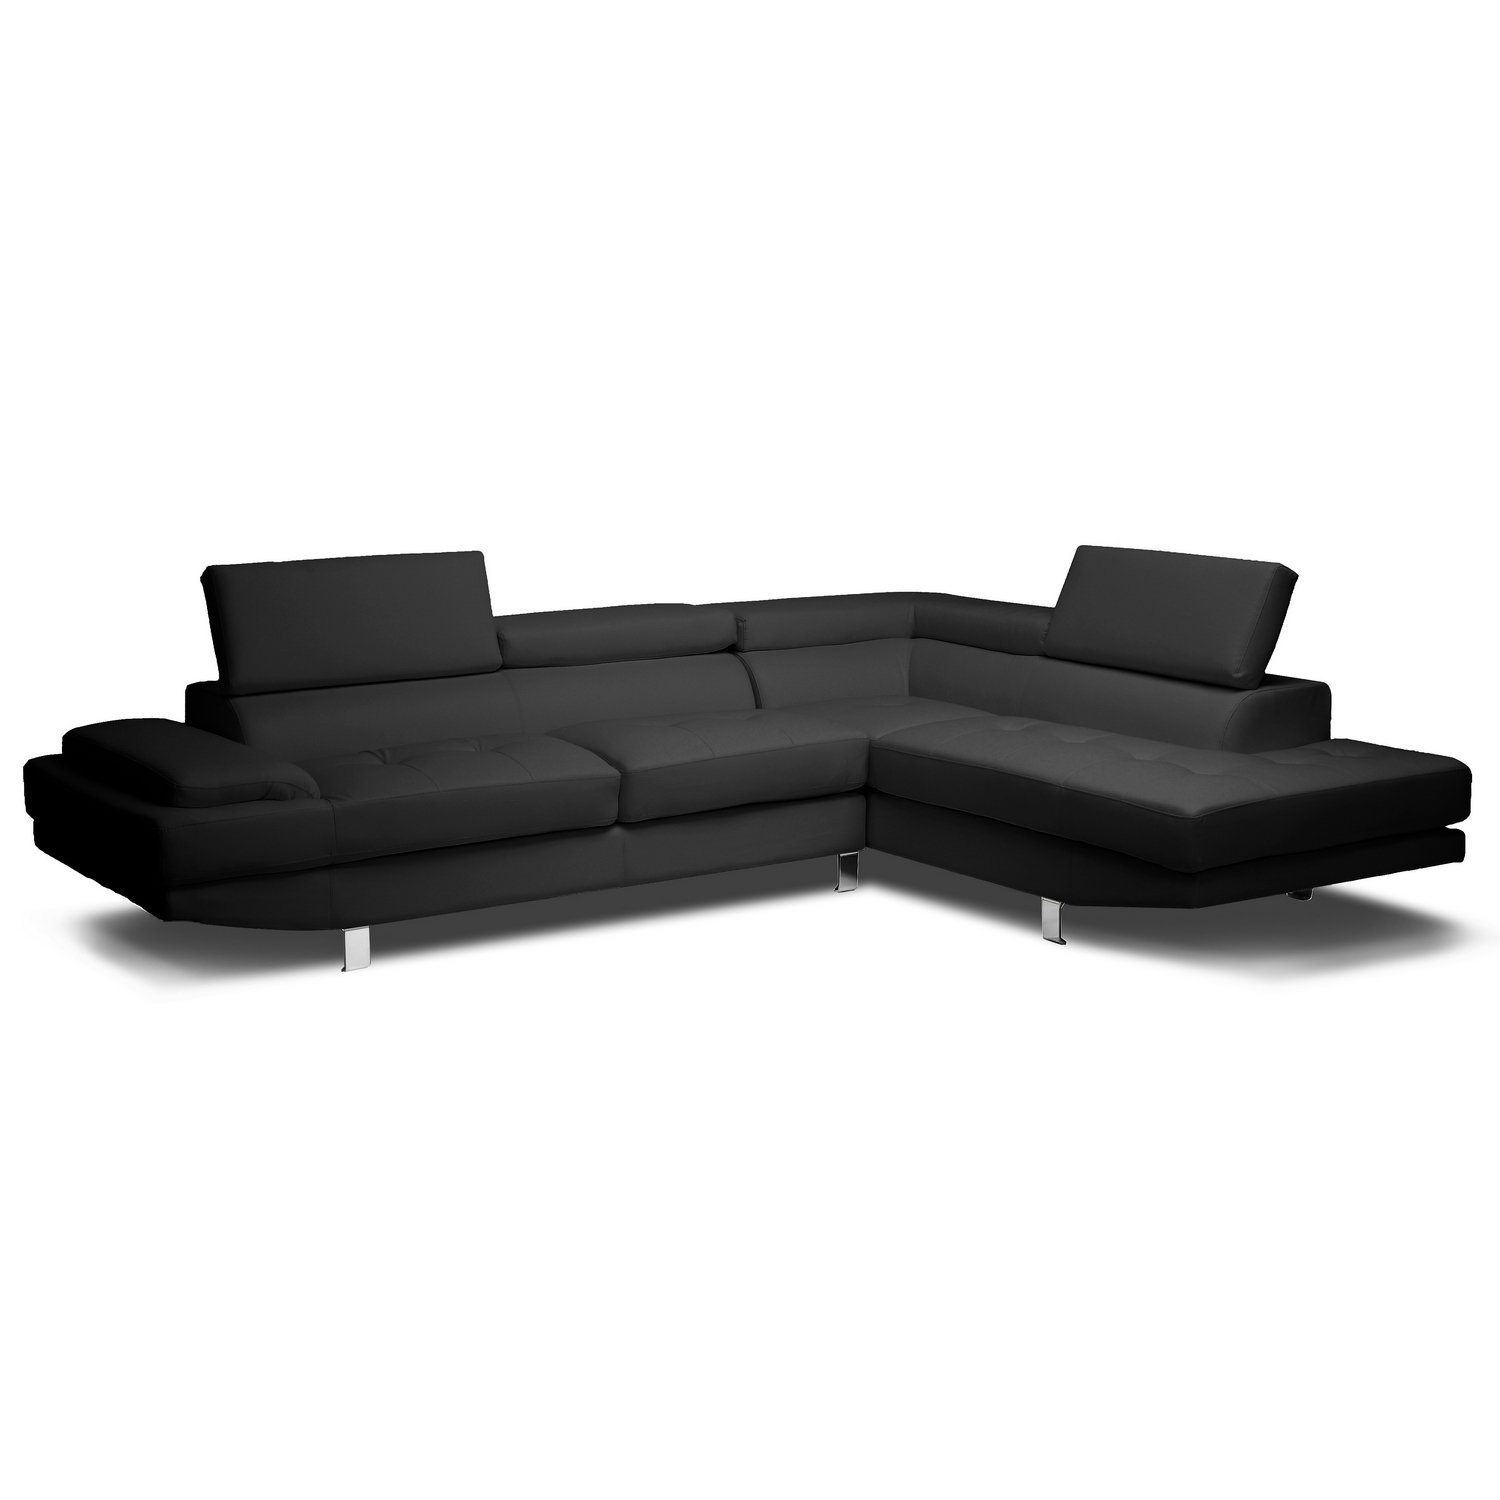 baxton studio dobson leather modern sectional sofa difference between couch and chesterfield home furniture design